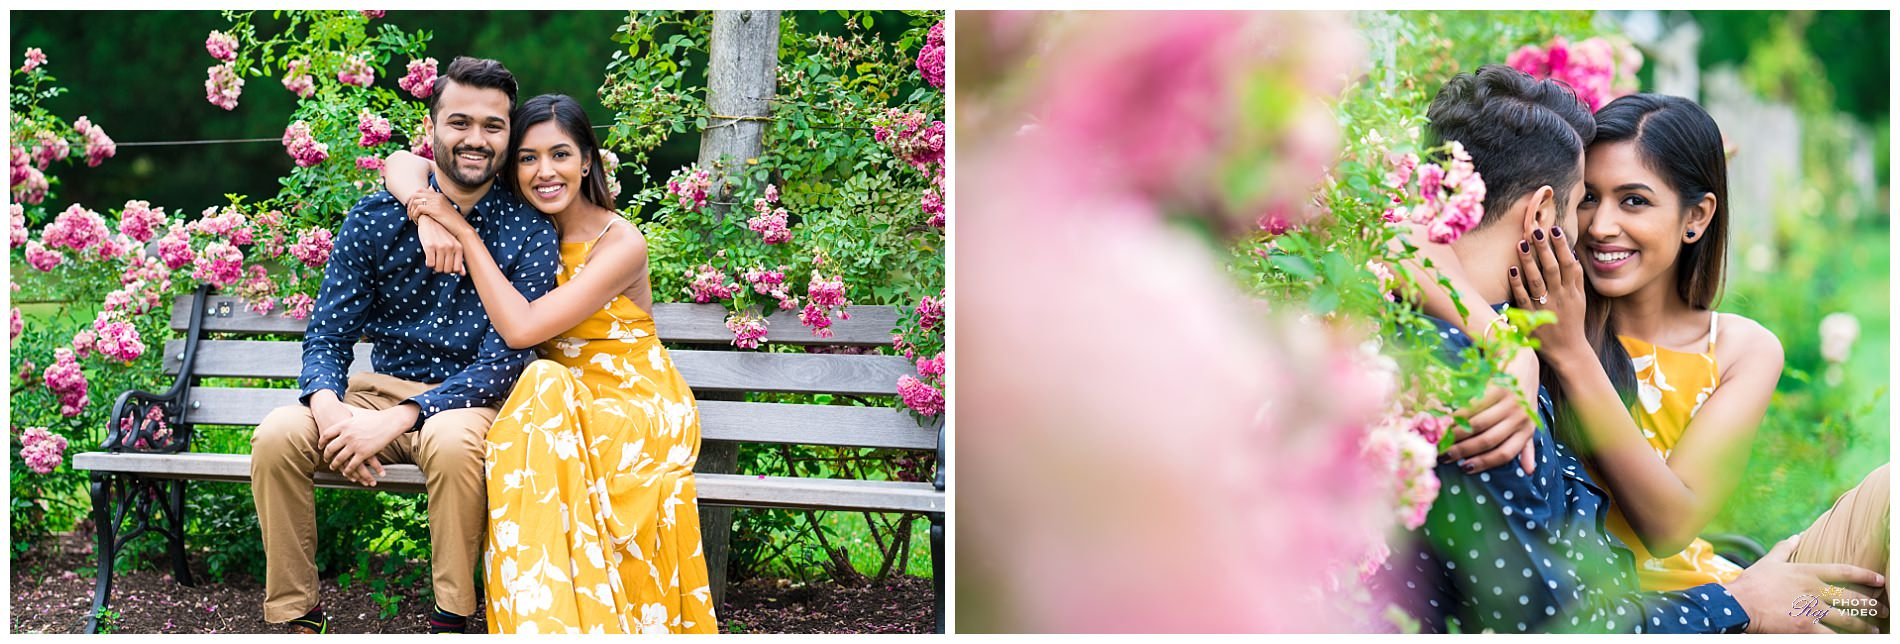 Elizabeth-Park-Rose-Garden-Hartford-CT-Engagement-Shoot-Pratiti-Suraj-9.jpg